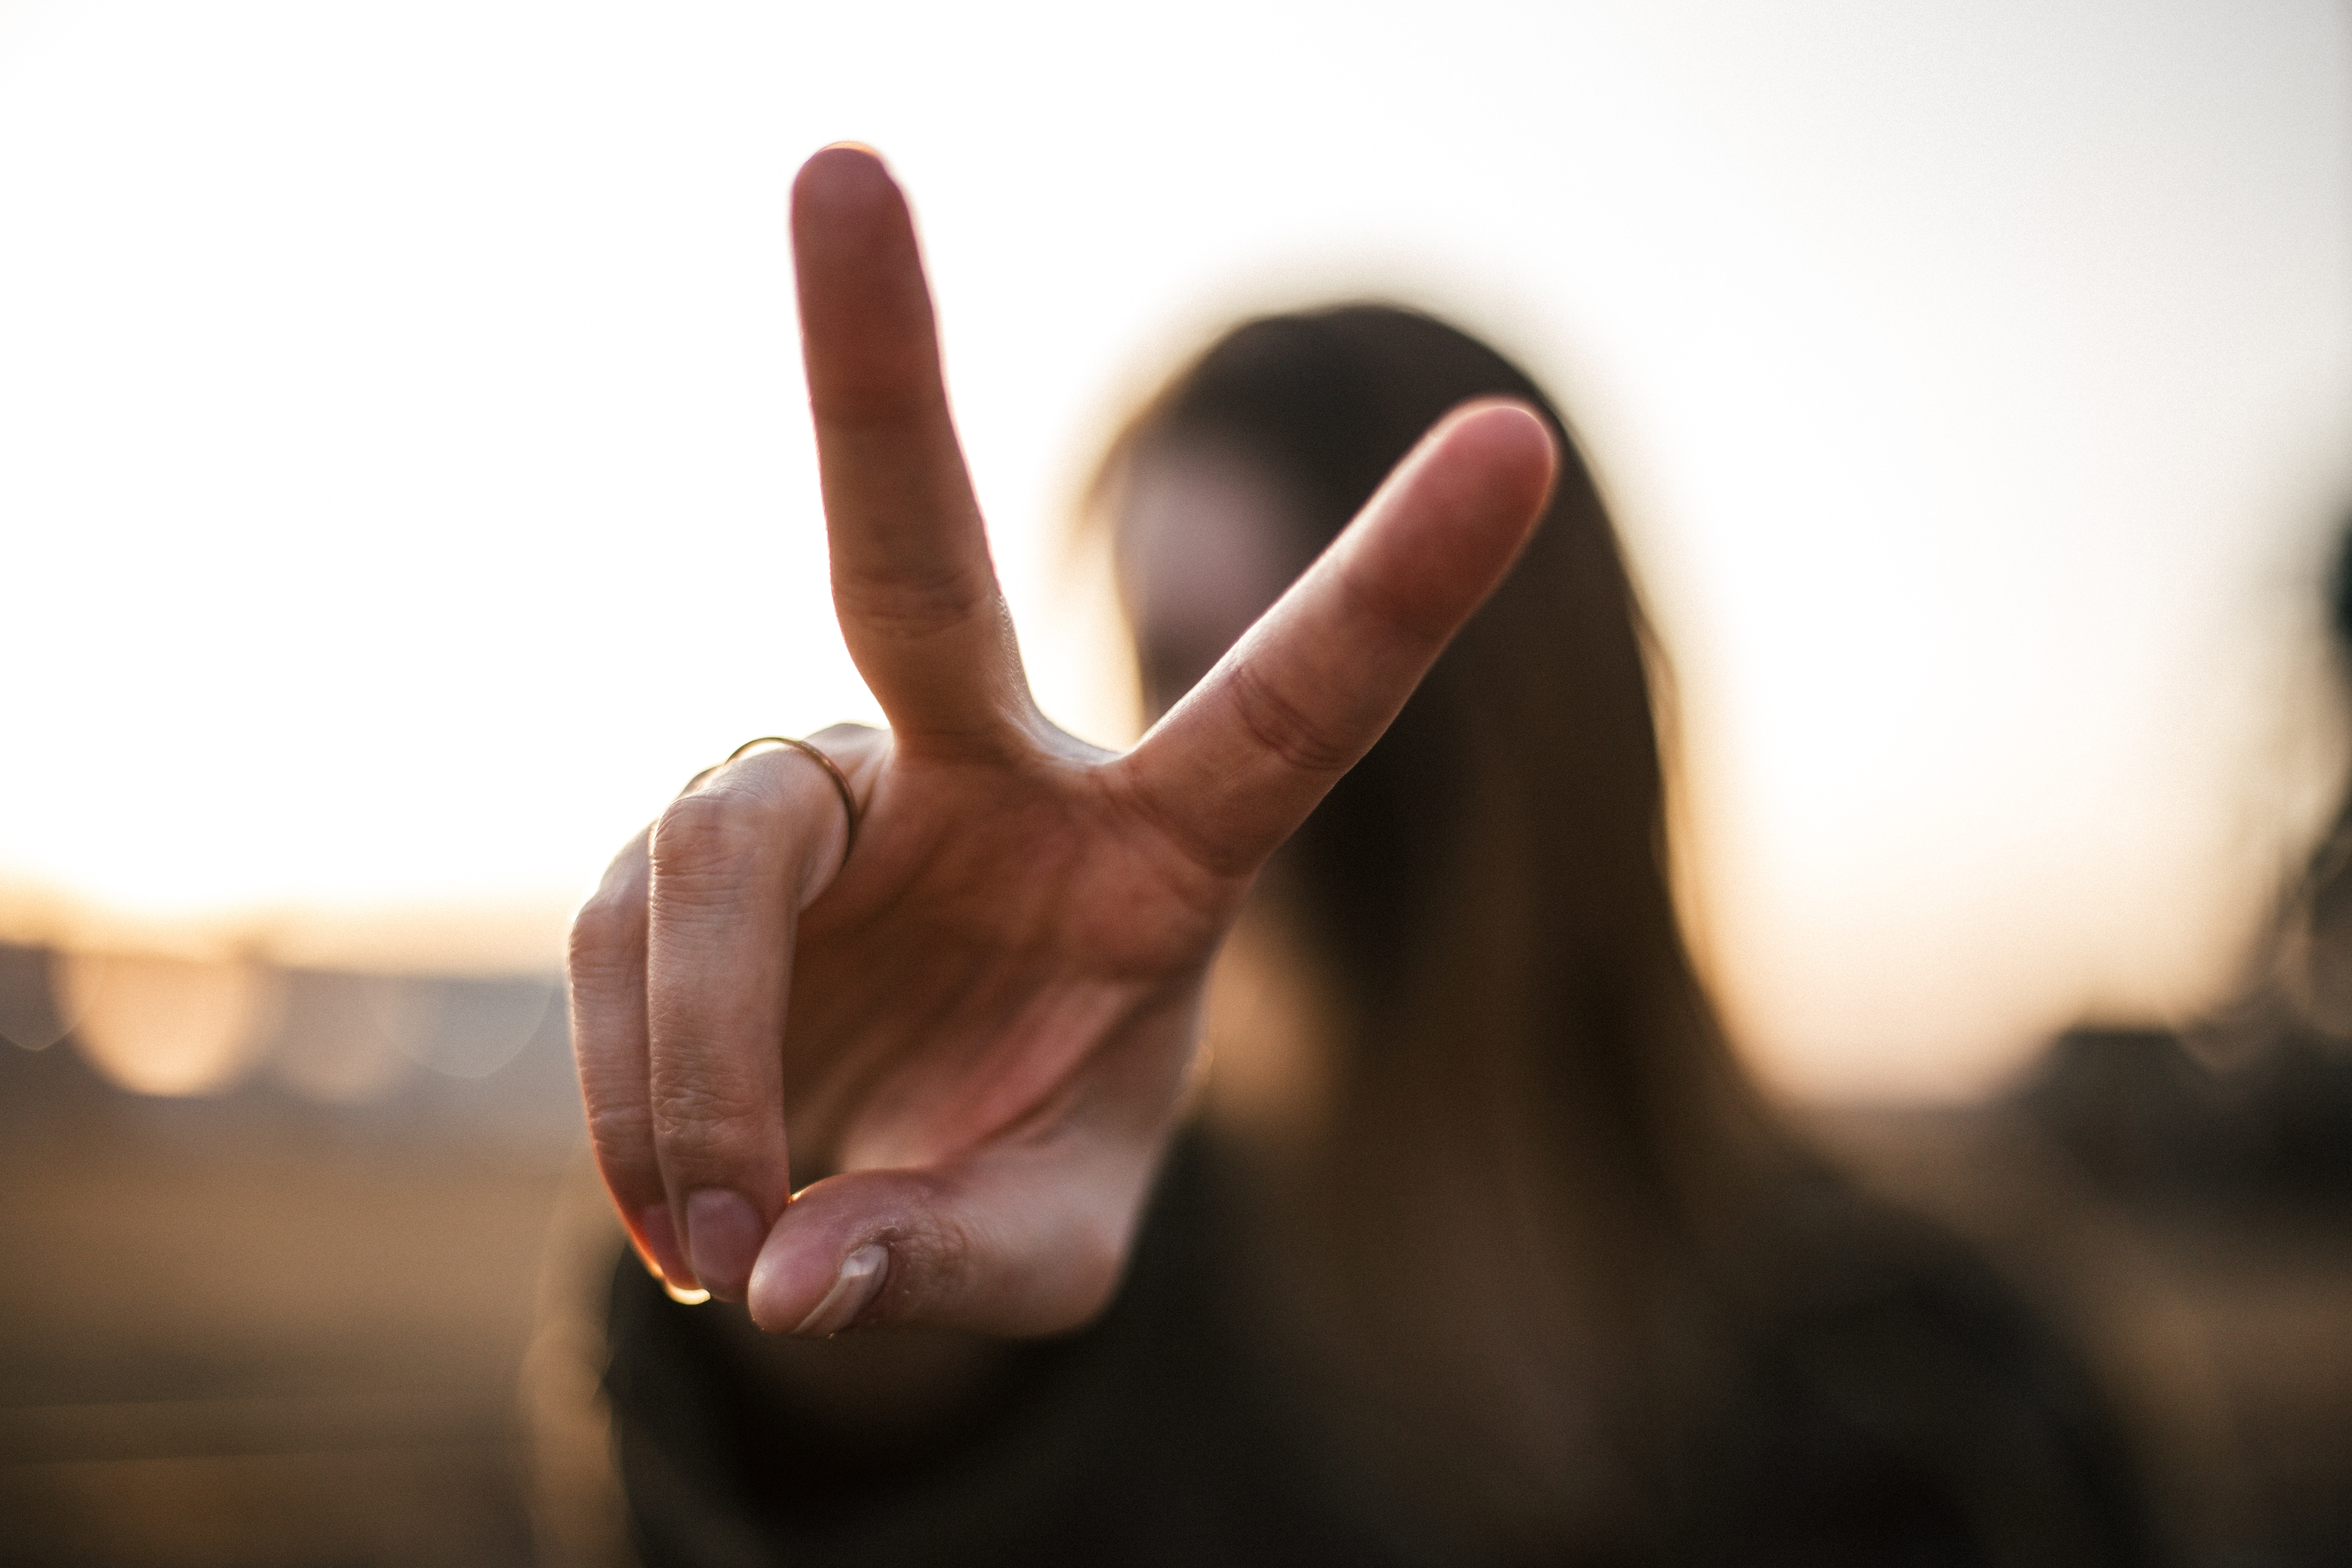 A figure holding up two fingers in a peace sign.